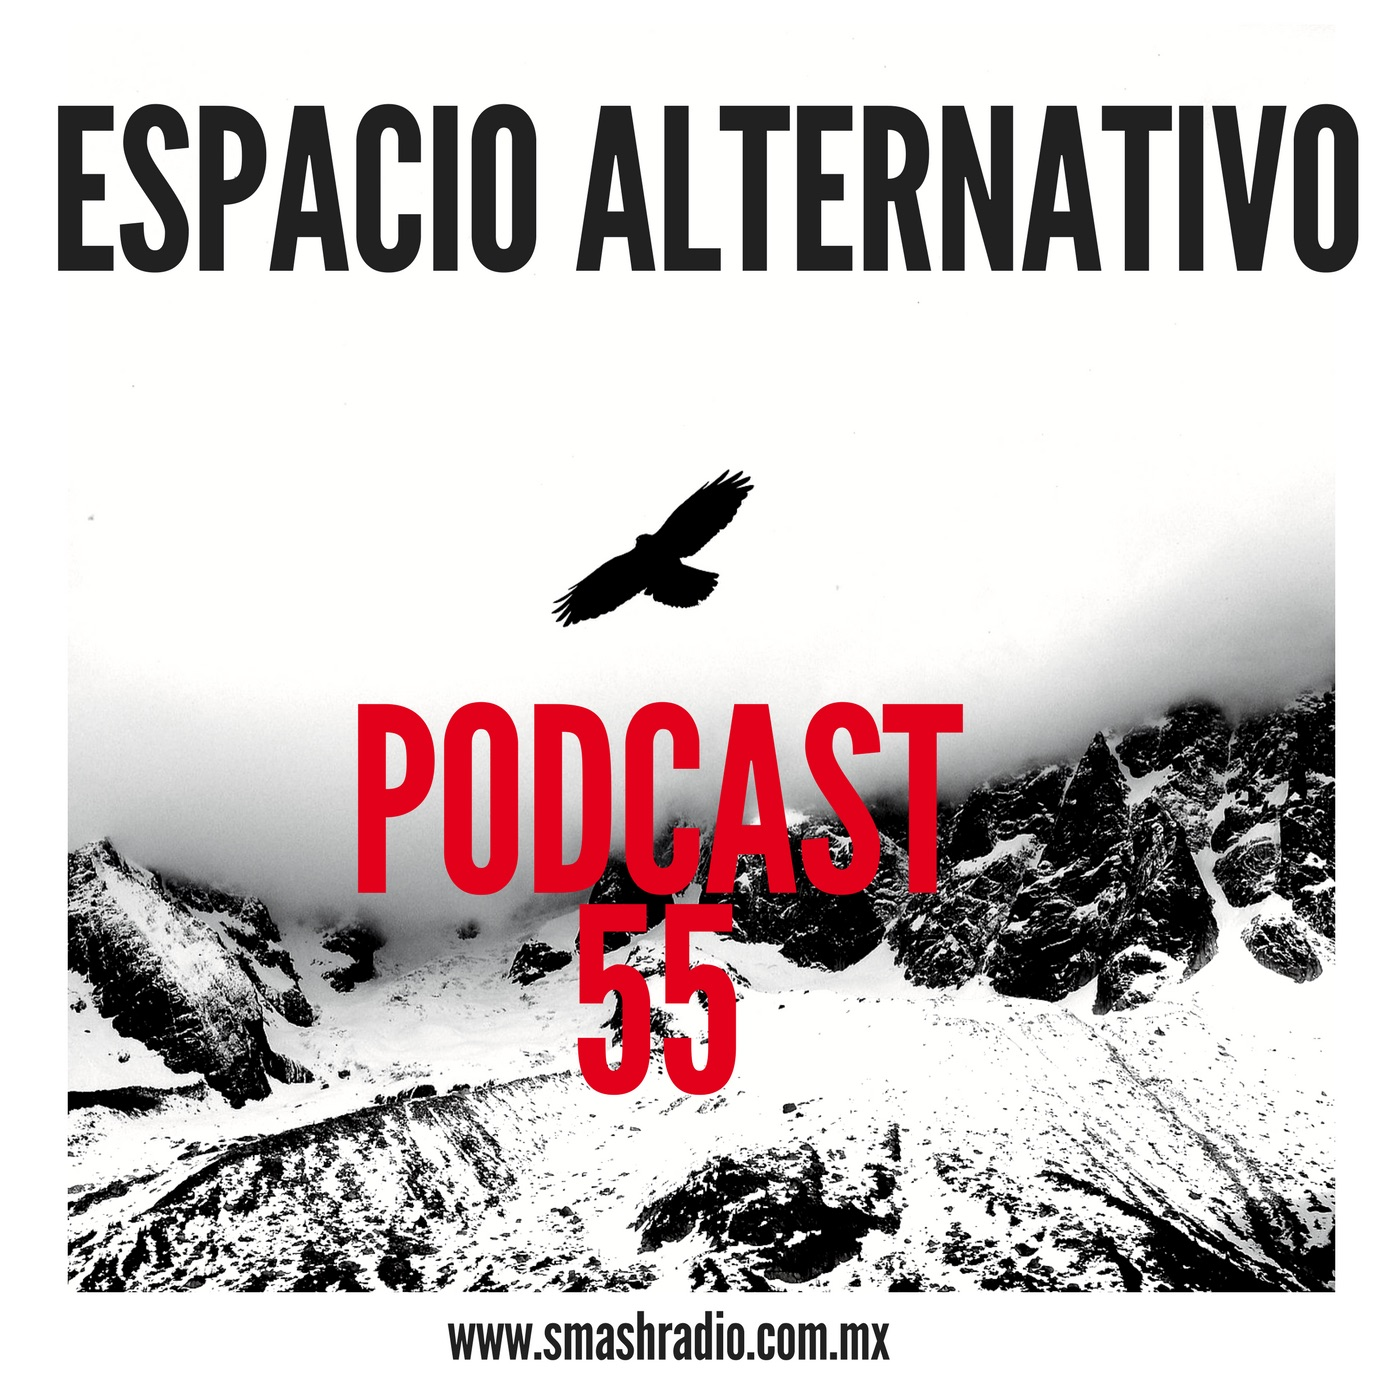 ESPACIO ALTERNATIVO POD 55